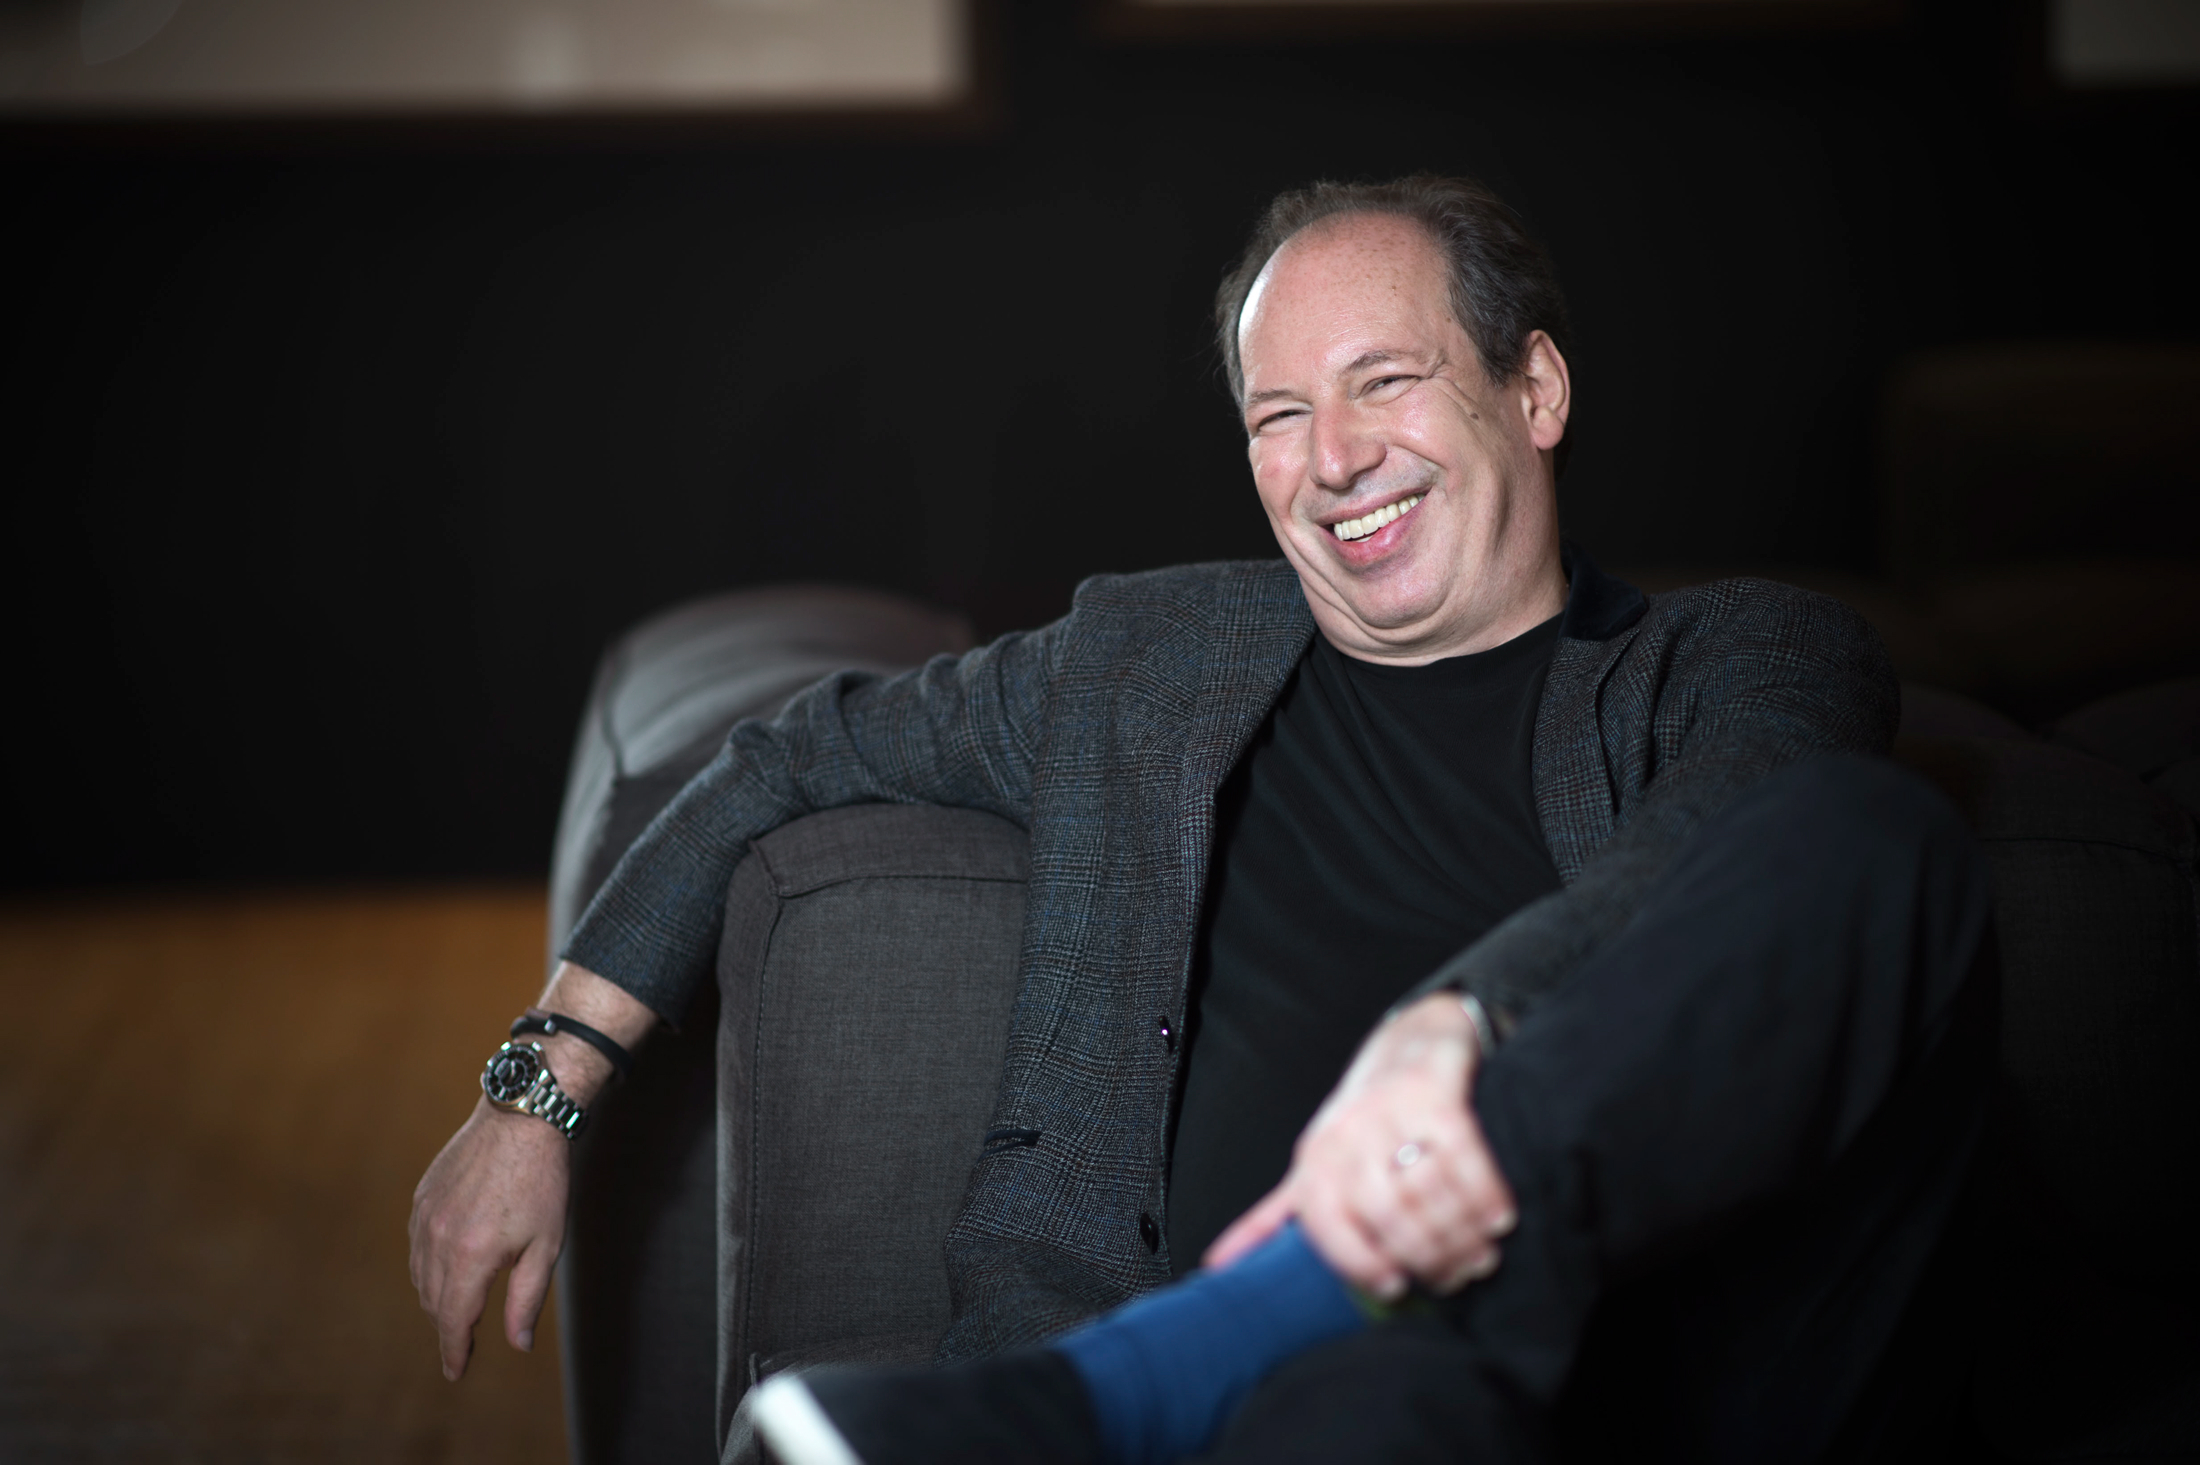 hans zimmer Check out hans zimmer's gear and equipment including the steinberg cubase 7, arturia cs-80 v software synthesizer, and roli seaboard grand.